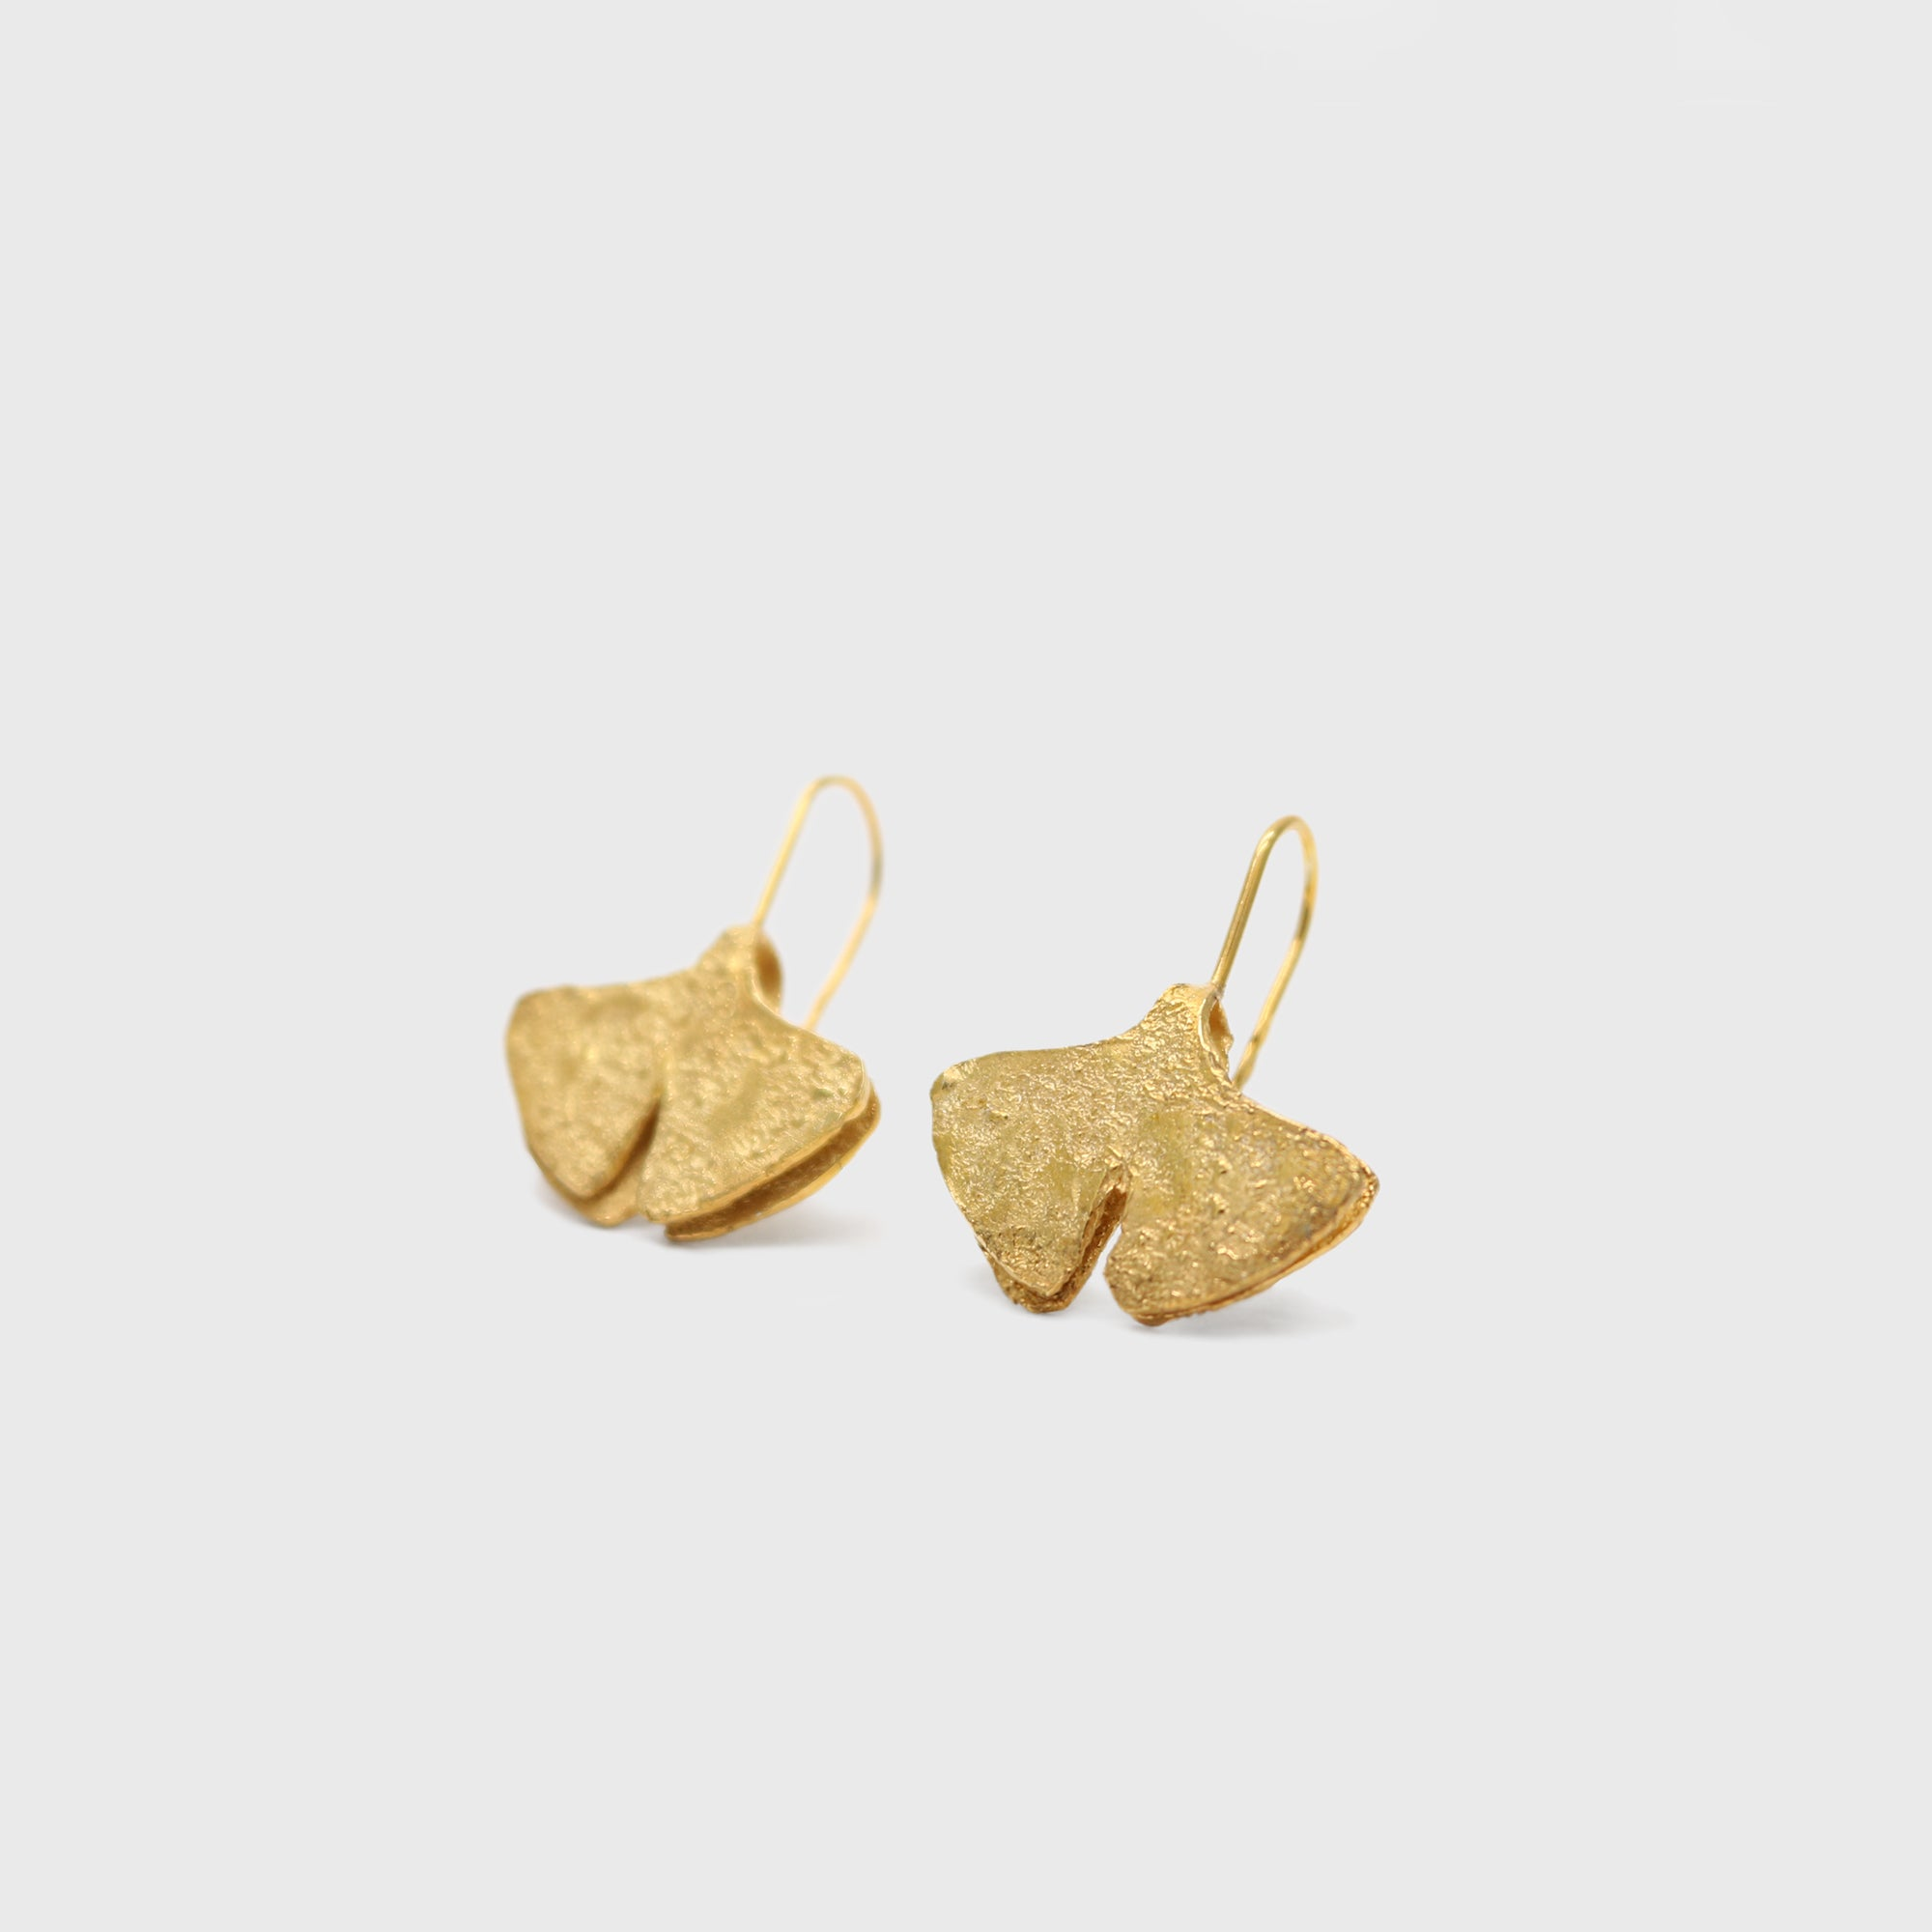 Seaflower Earrings – Paula Vieira Jewellery